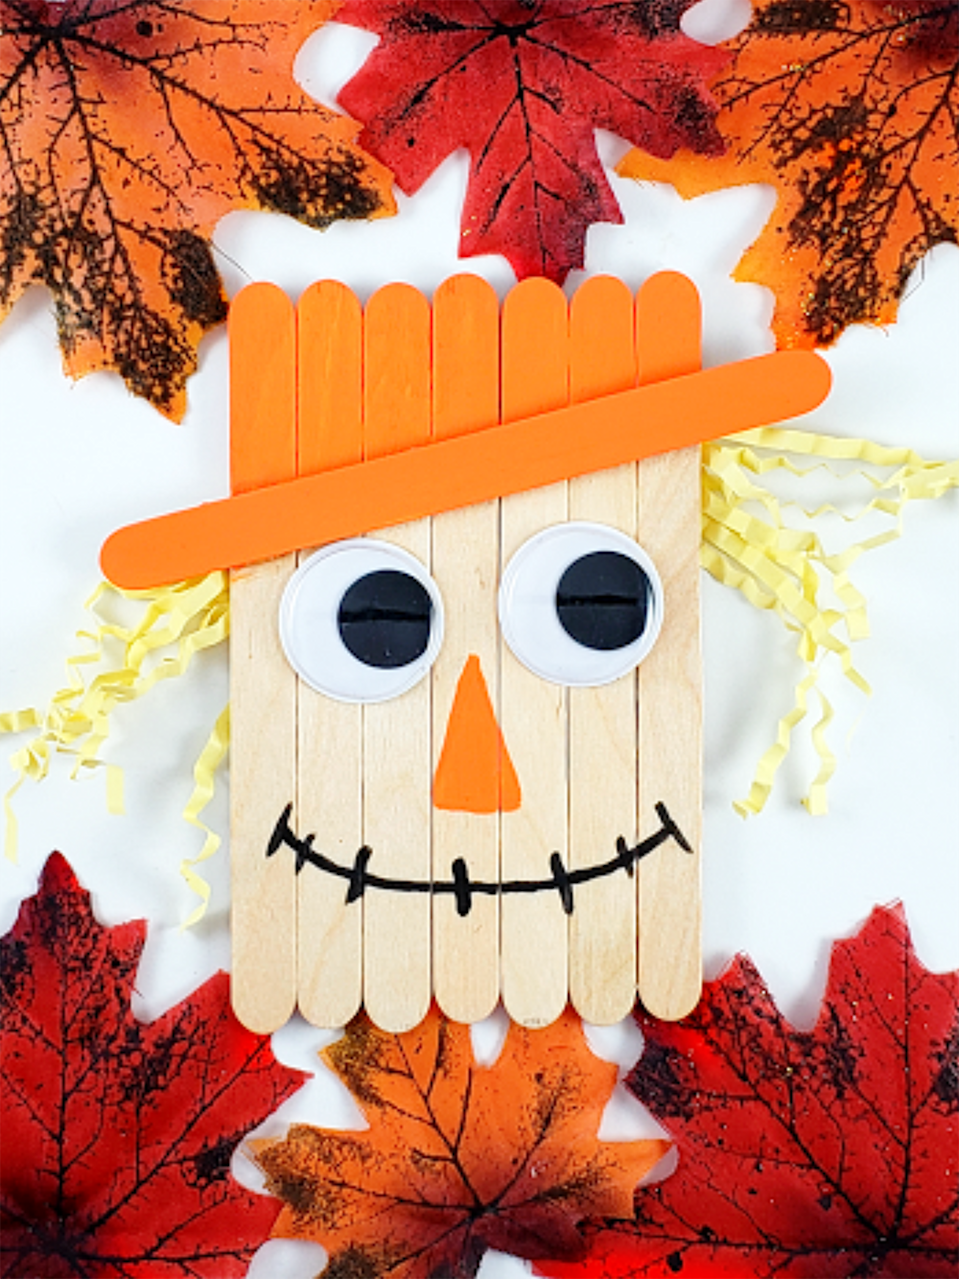 """<p>This scarecrow project is great to keep in mind for a rainy day, since you probably have all the materials you need for it lying around in your art drawer. And yet, he looks so cute when he's finished! </p><p><em><a href=""""https://simplemomproject.com/scarecrow-popsicle-stick-craft/"""" rel=""""nofollow noopener"""" target=""""_blank"""" data-ylk=""""slk:Get the tutorial at Simple Mom Project »"""" class=""""link rapid-noclick-resp"""">Get the tutorial at Simple Mom Project »</a></em></p>"""